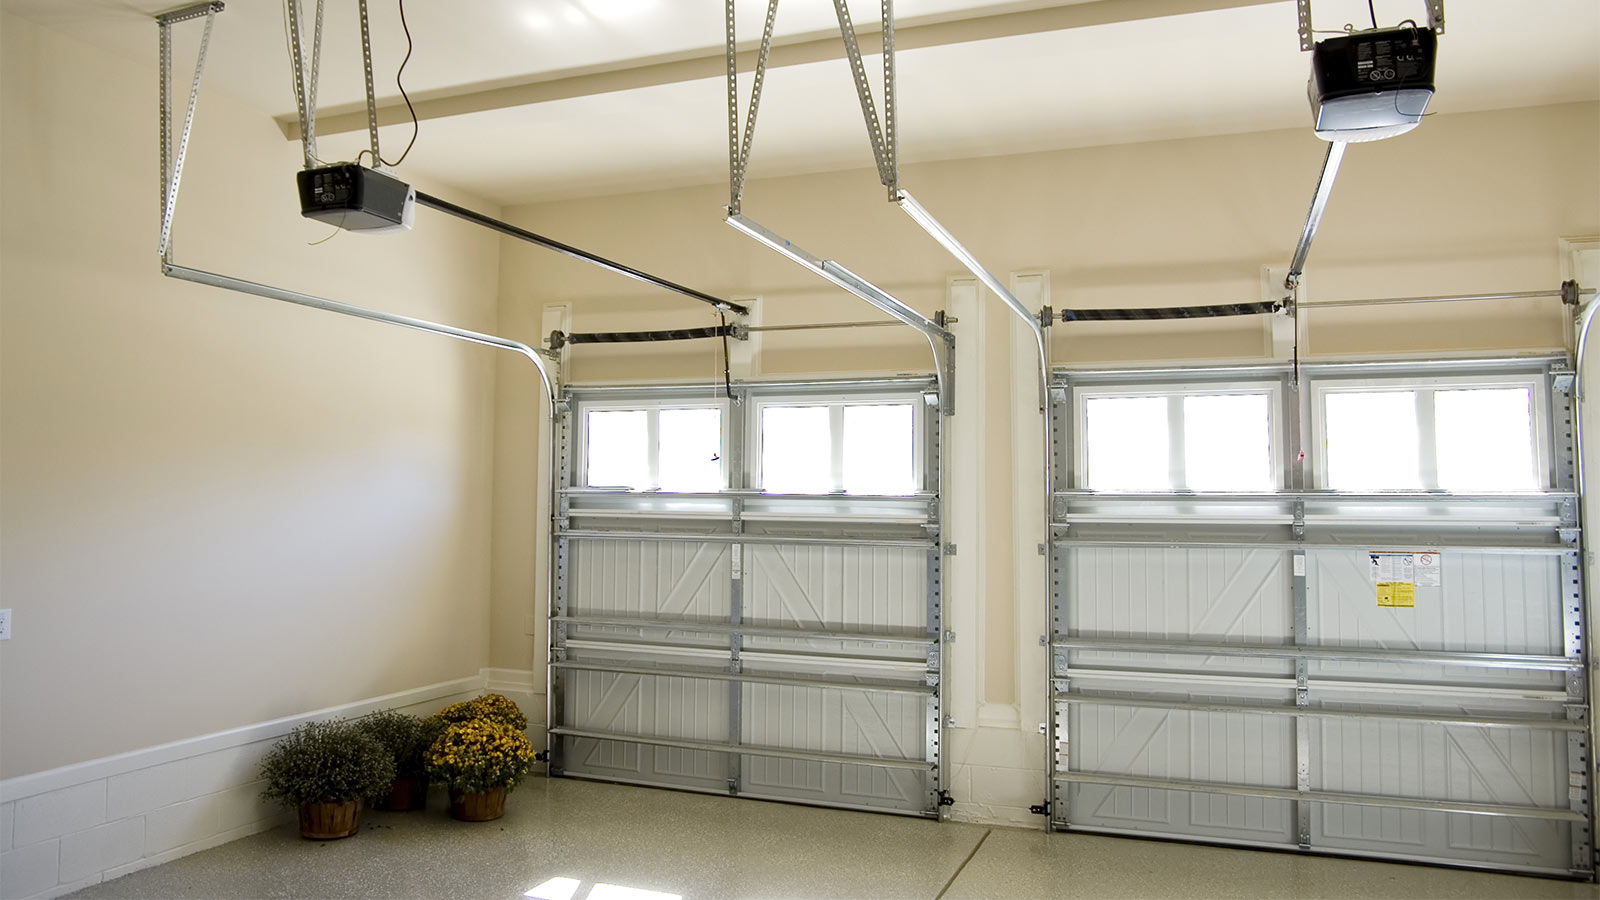 Sectional Garage Doors from Security Gates Kent suppliers.